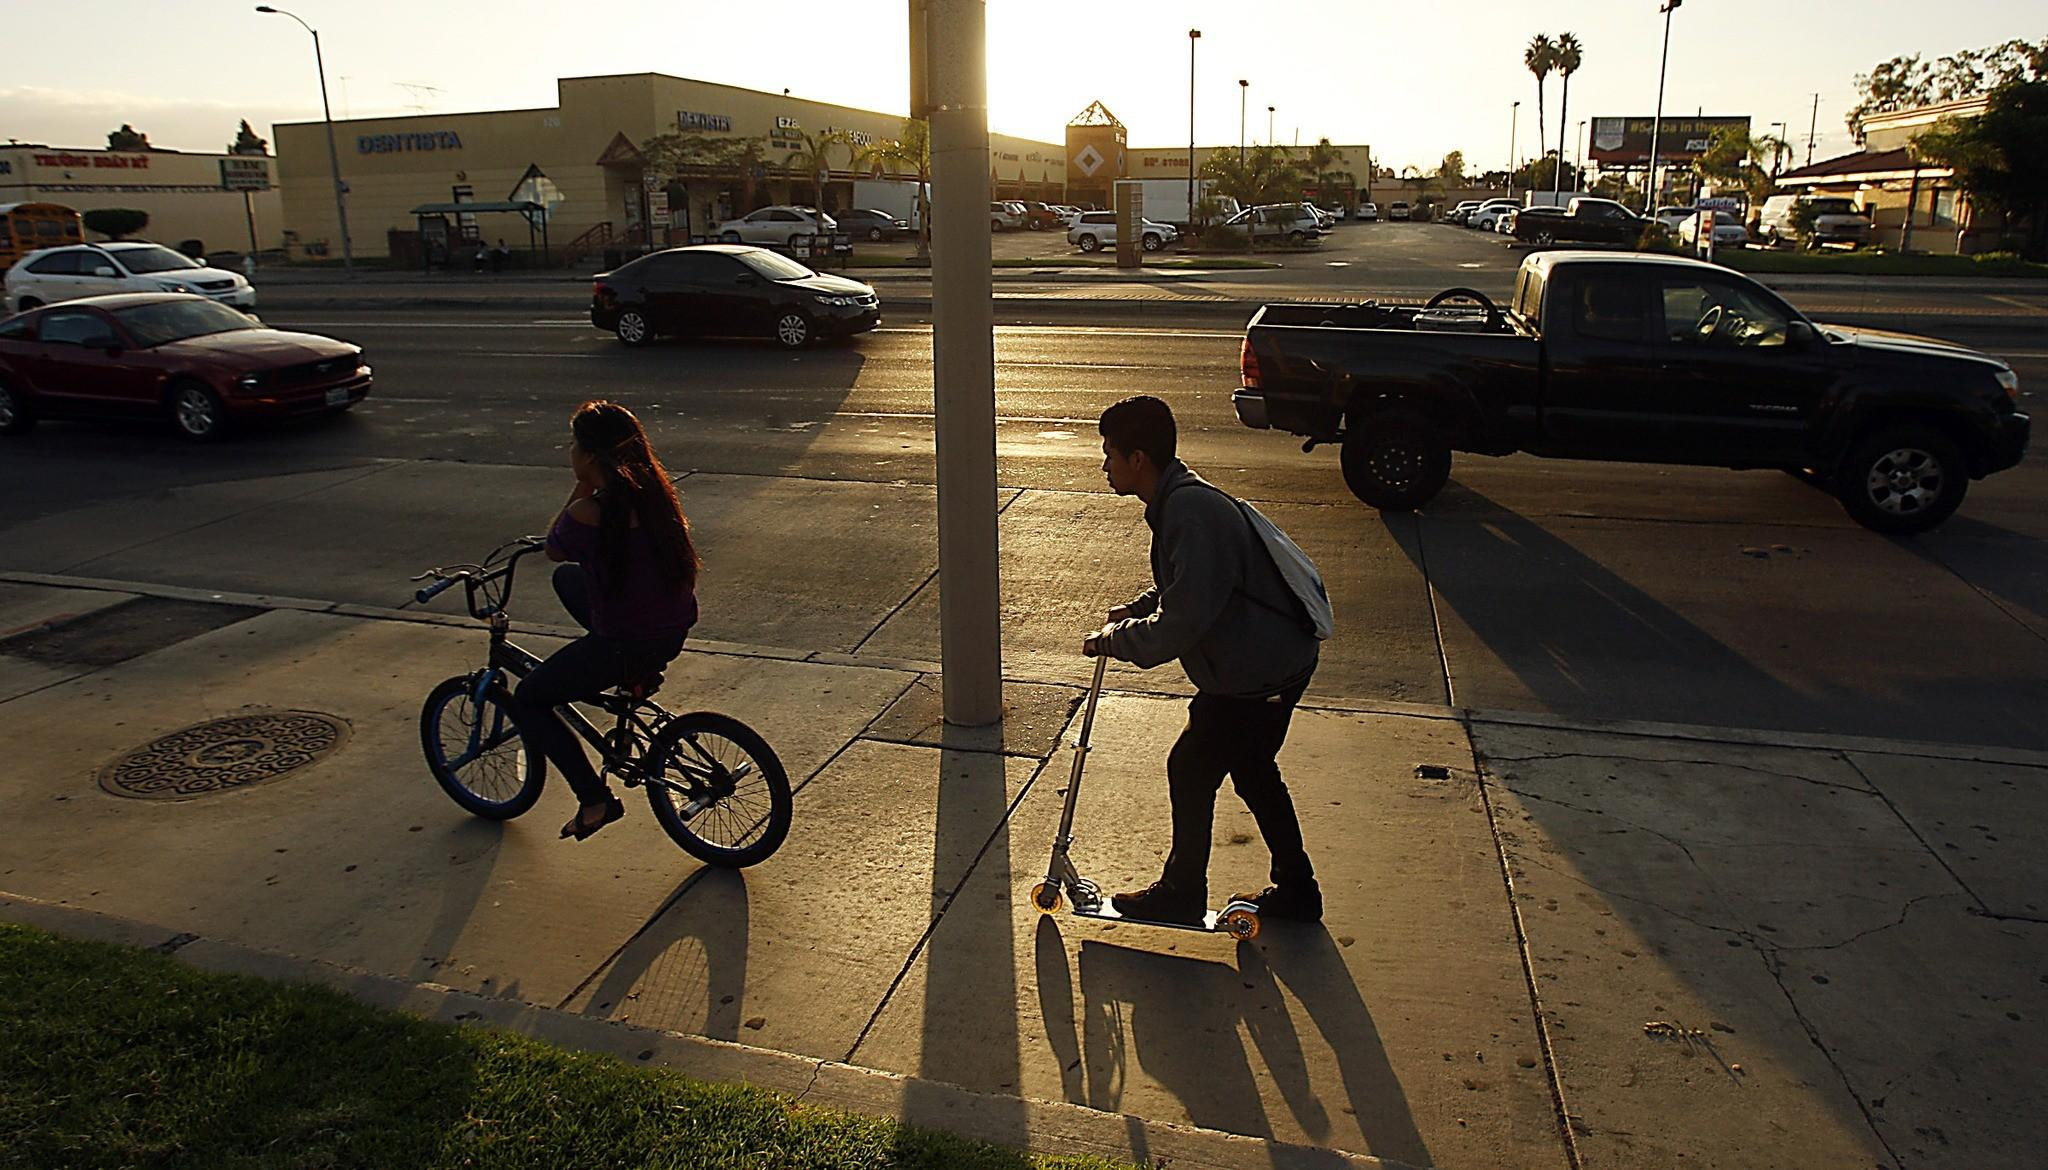 Kids scoot down Harbor Boulevard in Santa Ana as late afternoon traffic rolls along a landscape of strip malls. Despite real estate development, the boulevard has seen little change over the years. There is no equivalent of the light-rail expansion that is re